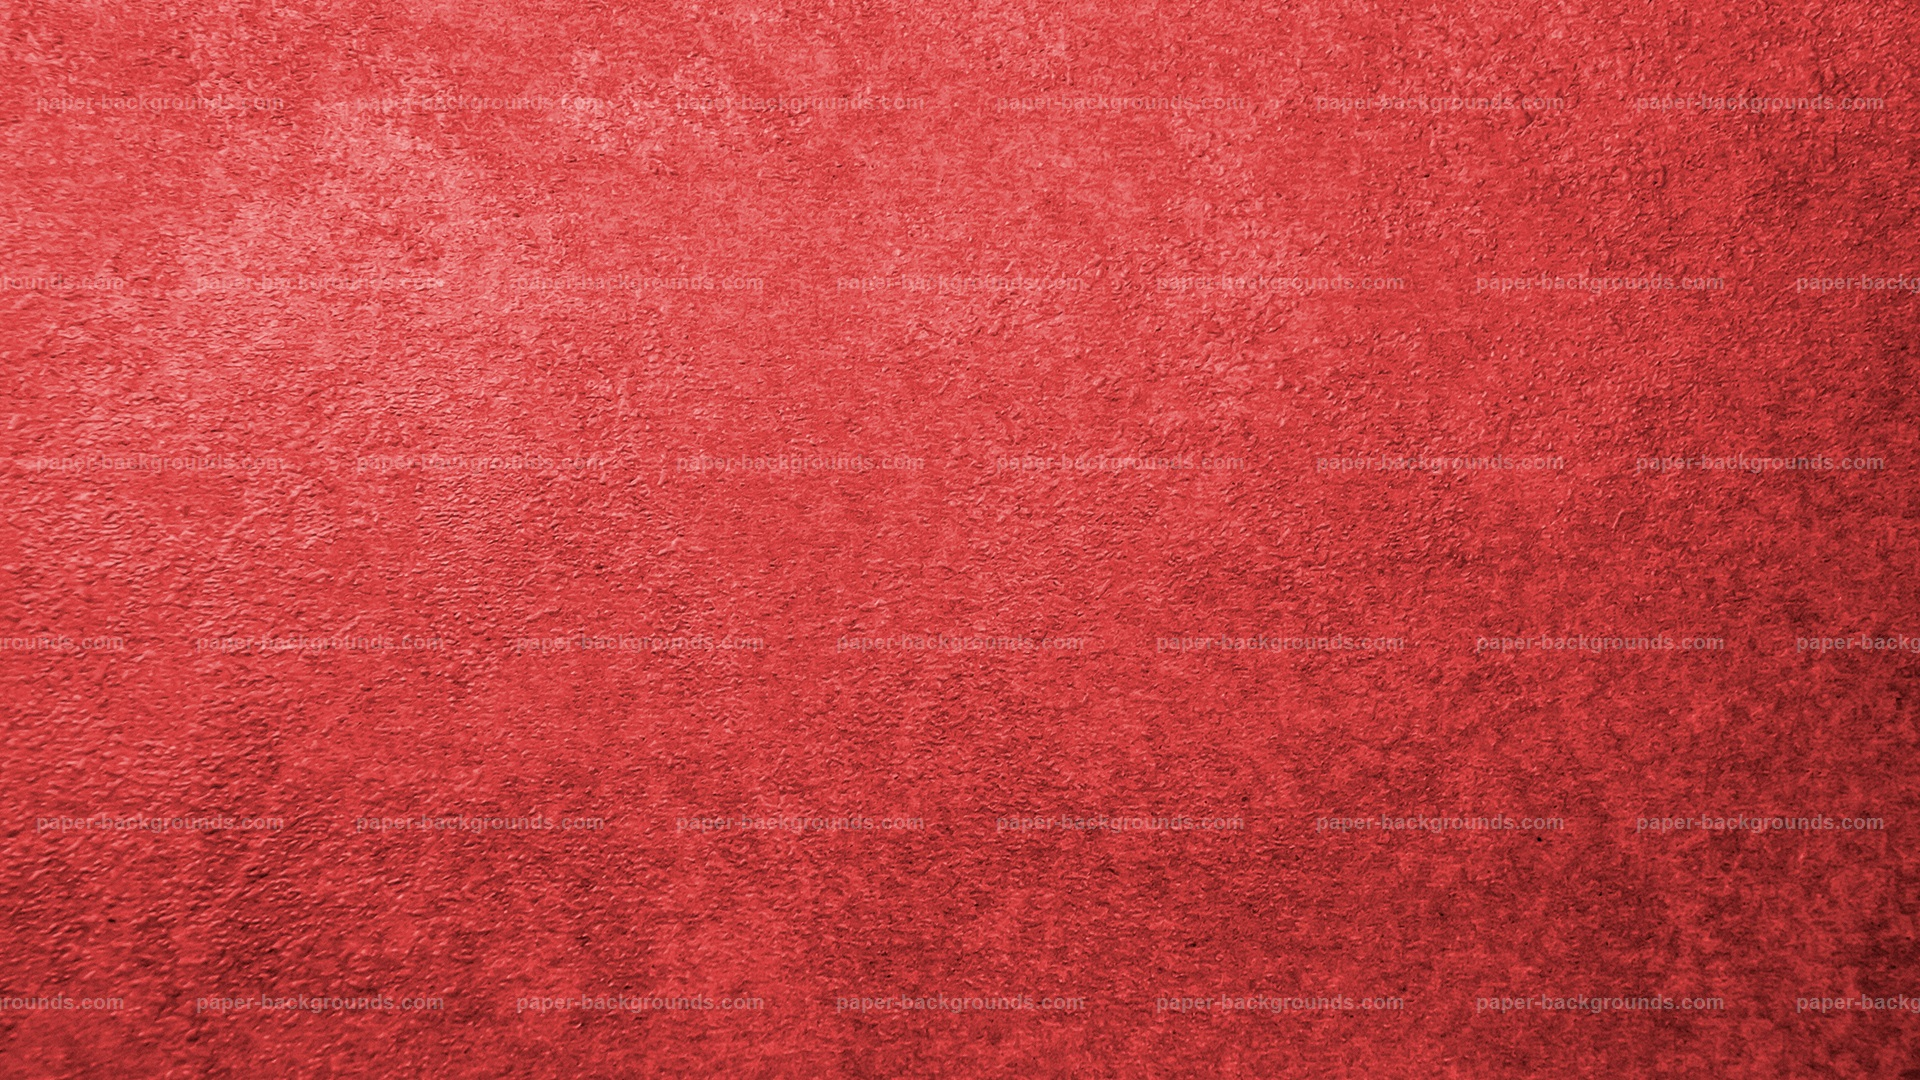 red textured background hd - photo #24